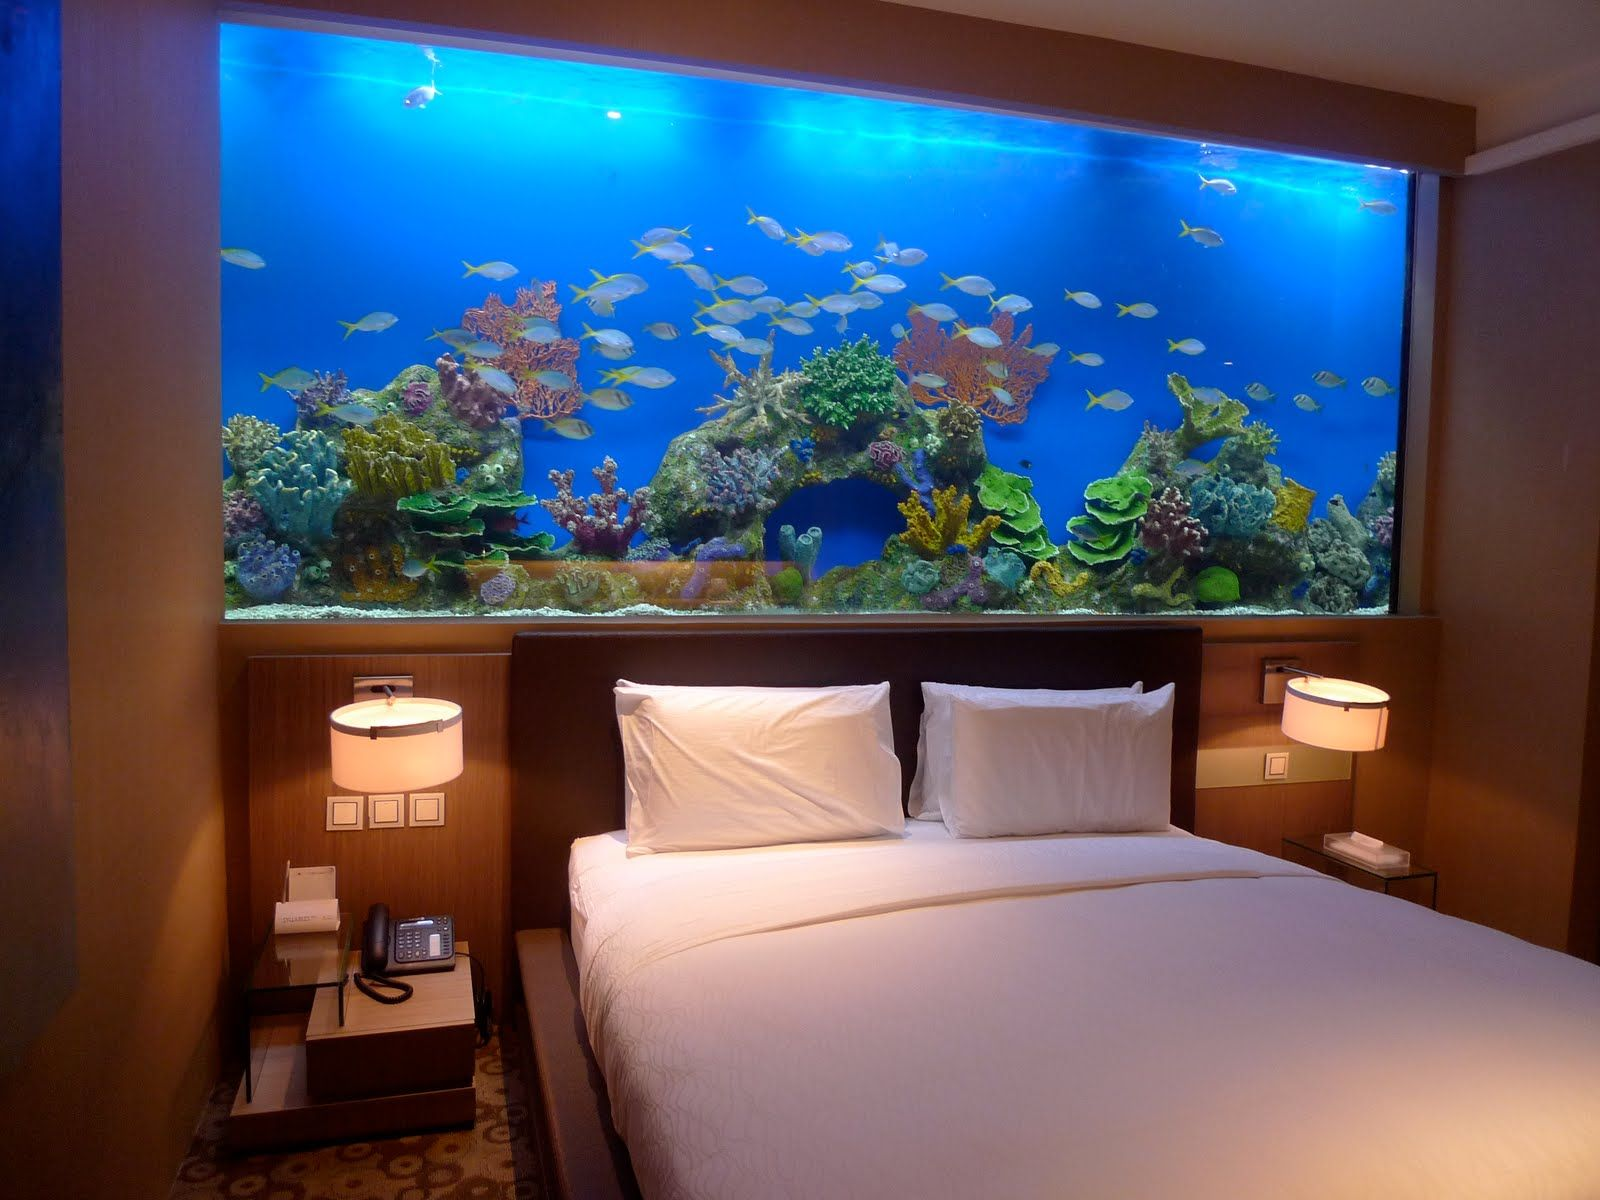 Fish aquarium in brisbane - 208 Best Images About Kool Fish Aquarium Ideas On Pinterest Aquarium Decorations Fish Aquariums And Saltwater Fish Tanks